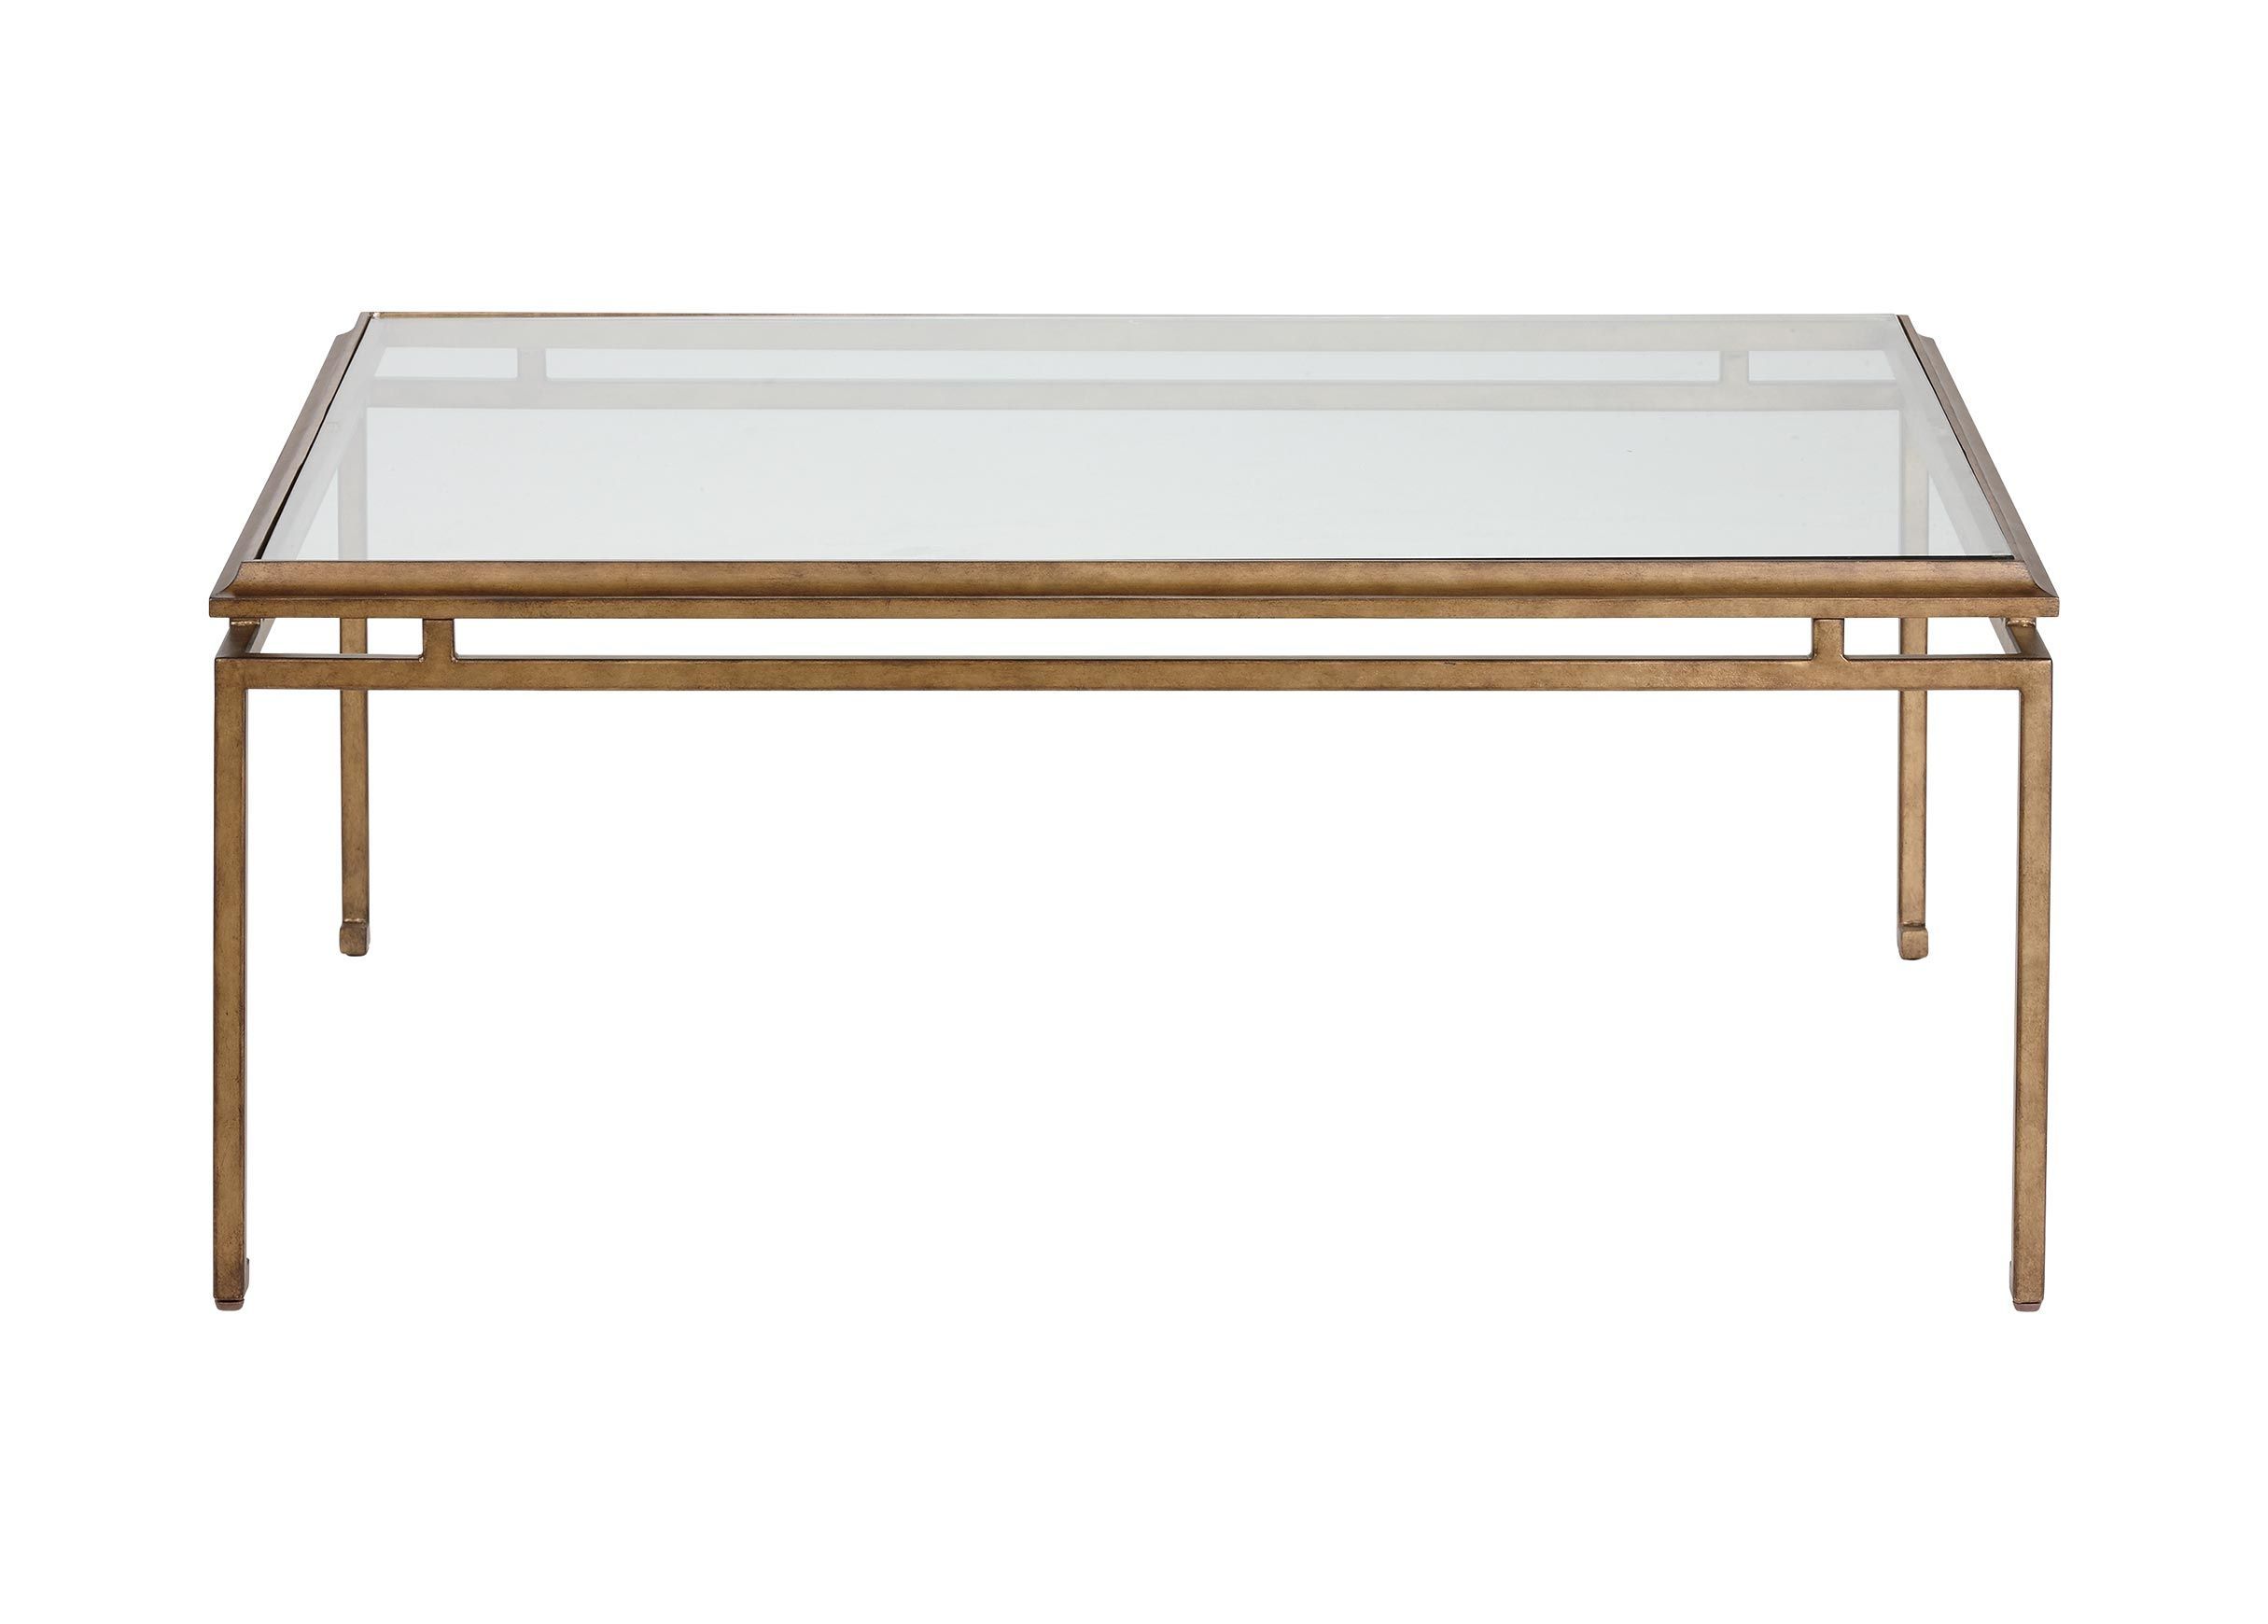 Beacon Square Coffee Table Coffee Tables Coffee Table Square Antique Coffee Tables Coffee Table [ 1740 x 2430 Pixel ]